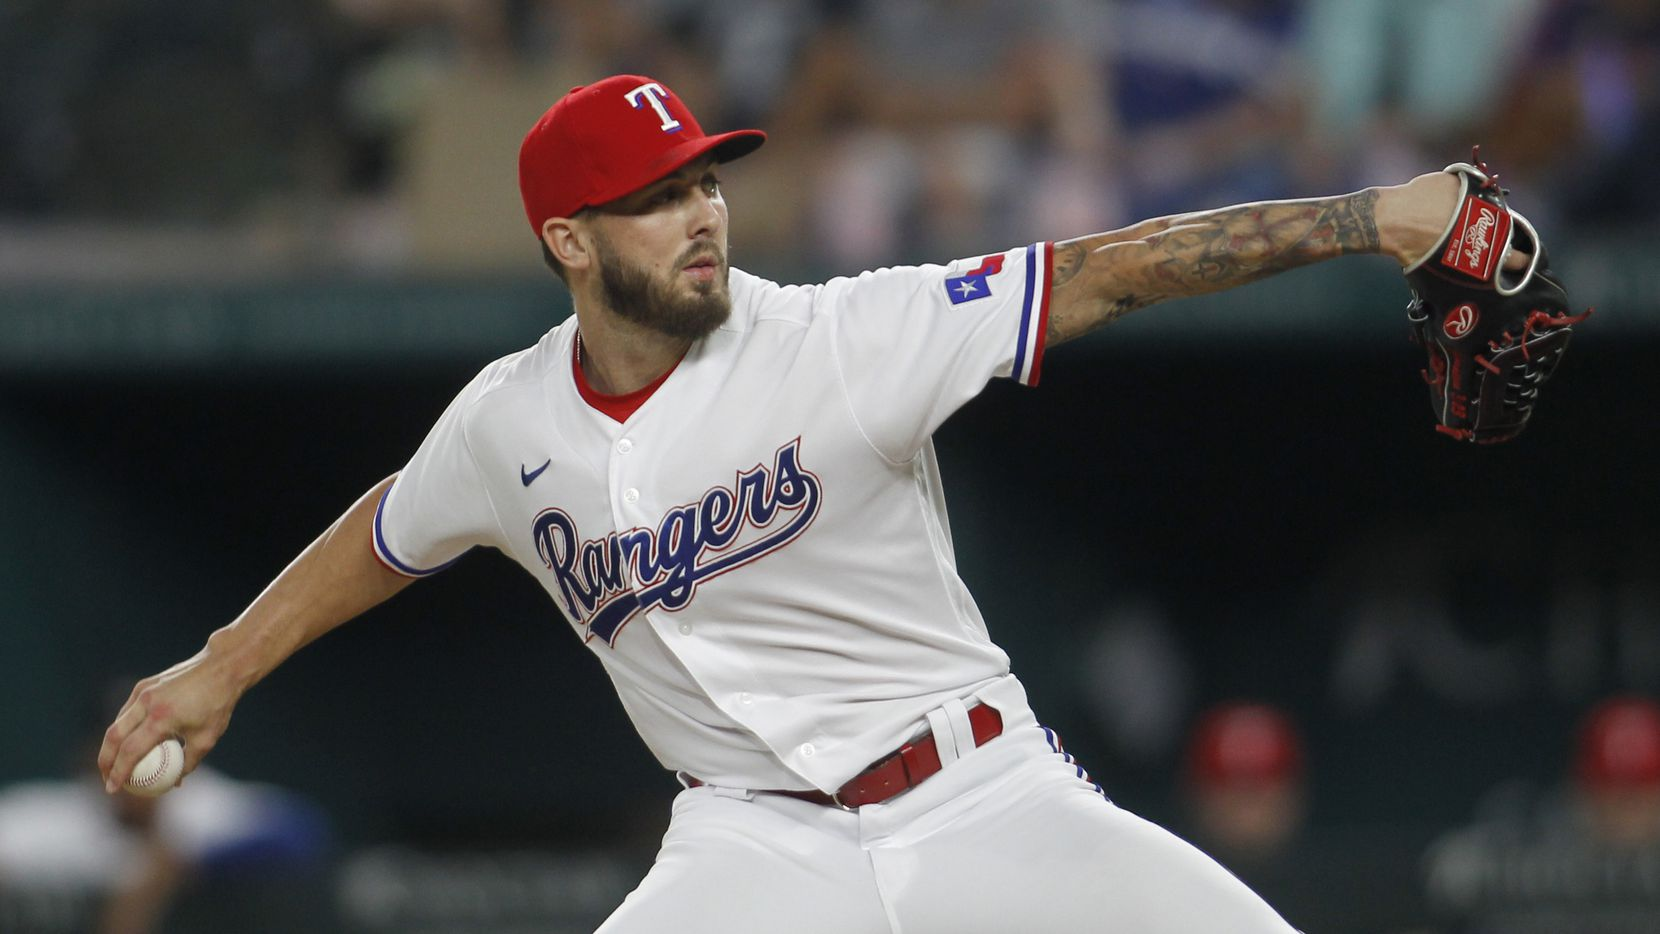 Texas Rangers pitcher Joe Barlow (68) delivers a pitch to a Los Angeles Angels batter during the top of the 8th inning of play. The Rangers hosted the Los Angeles Angels at Globe Life Field in Arlington on August 2, 2021. (Steve Hamm/ Special Contributor)